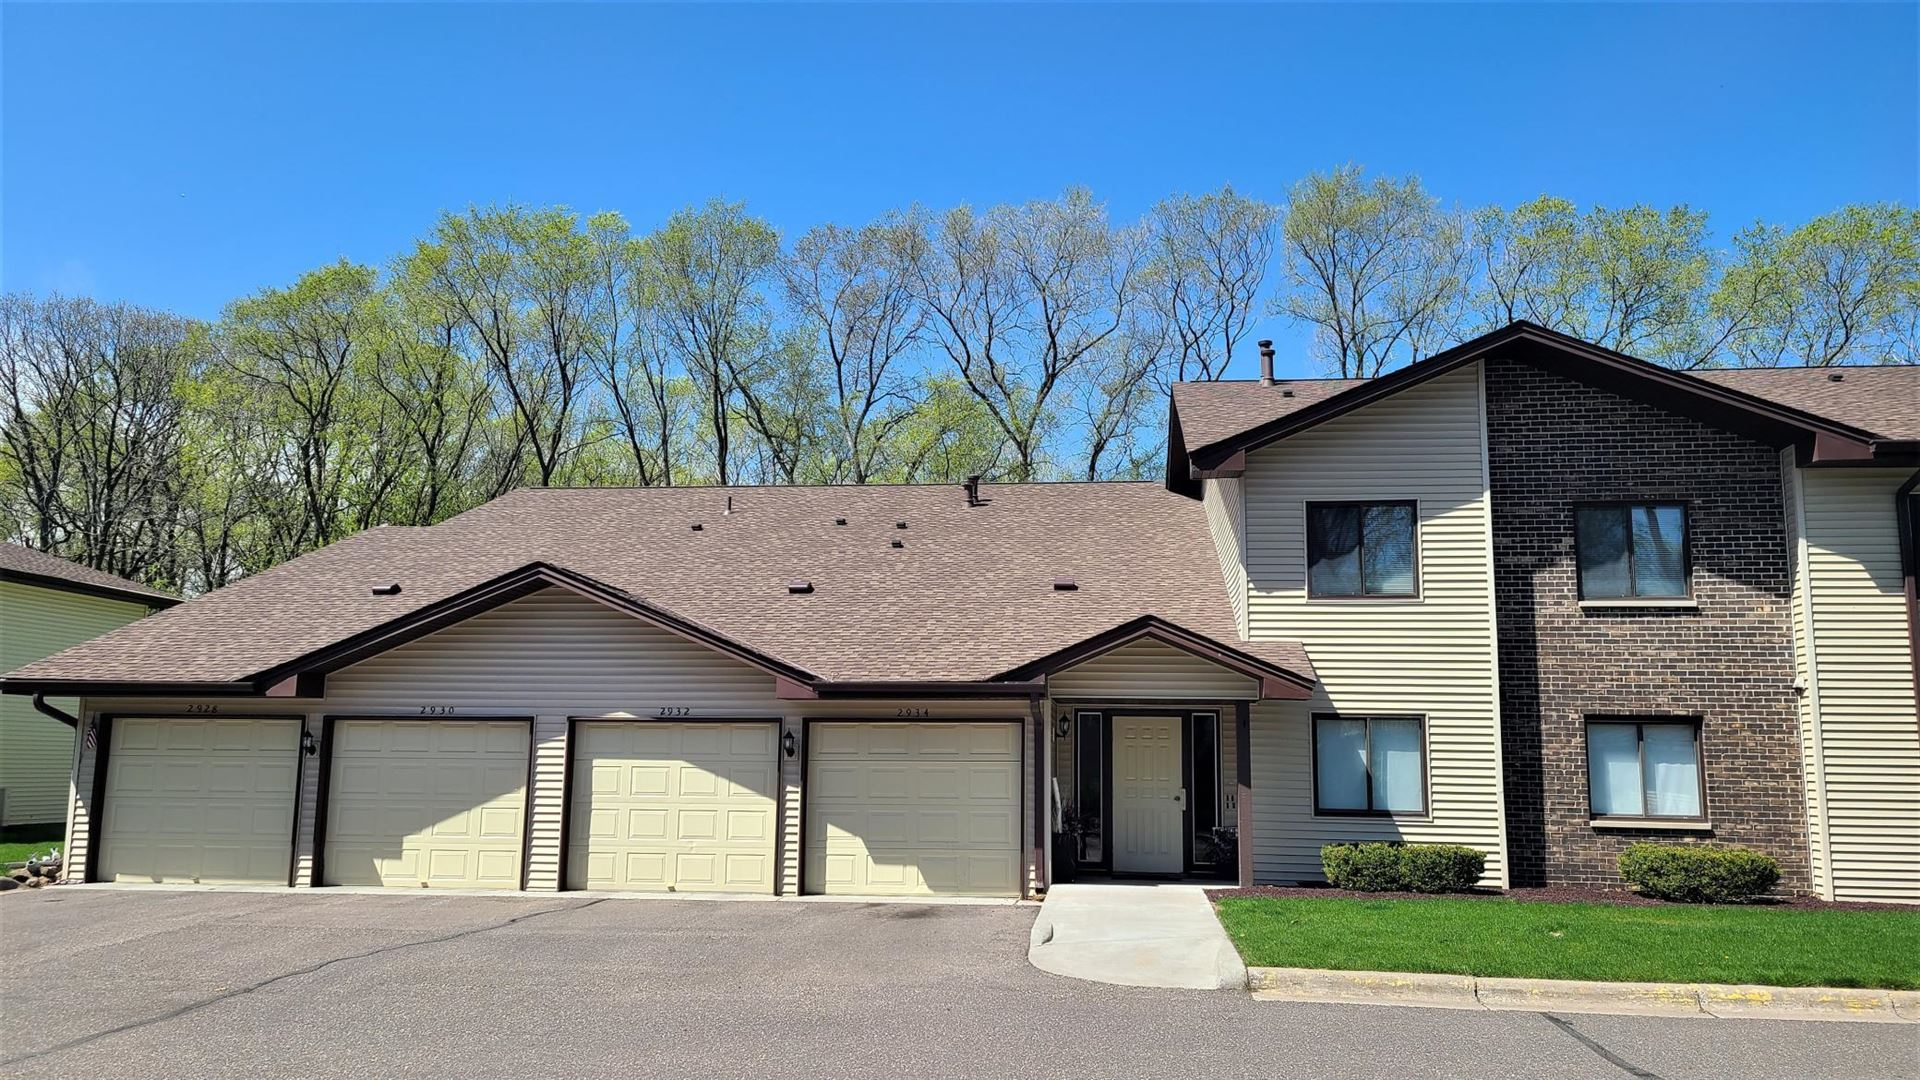 2932 Mounds View Boulevard NE #14, Mounds View, MN 55112 - MLS#: 5733004